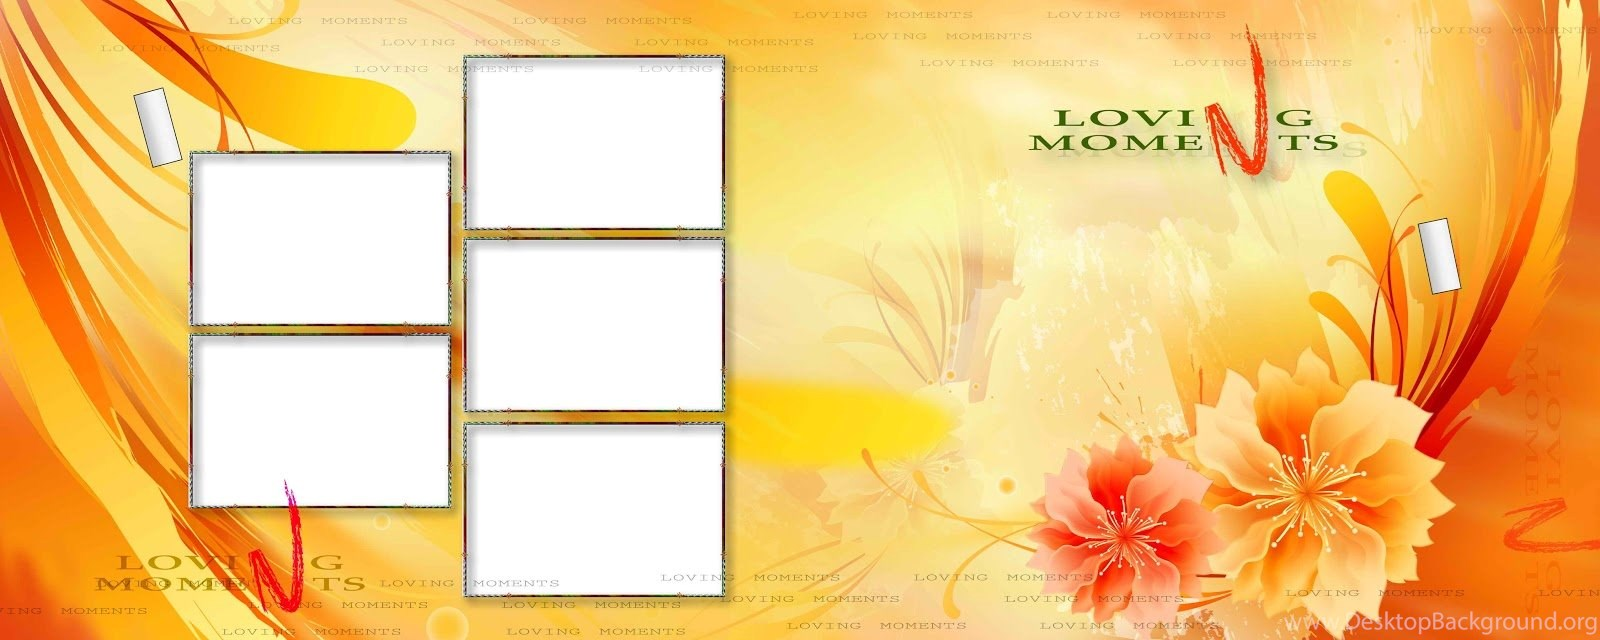 Psd Wedding Backgrounds For Photoshop Free Download Psd Desktop Background